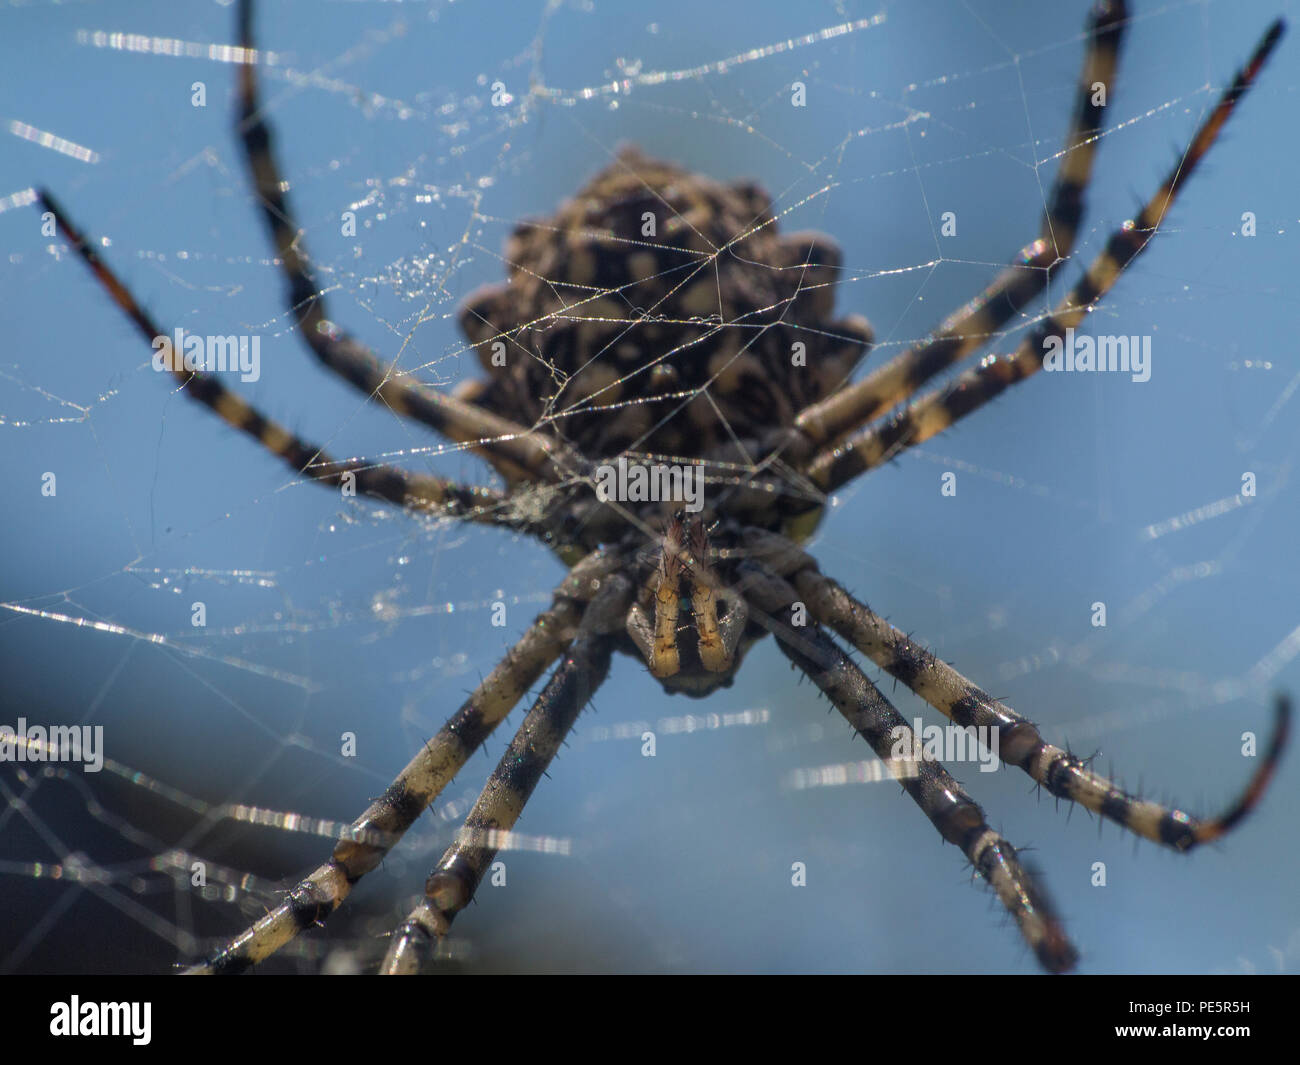 Argiope lobata is a species of spider belonging to the family Araneidae - Stock Image